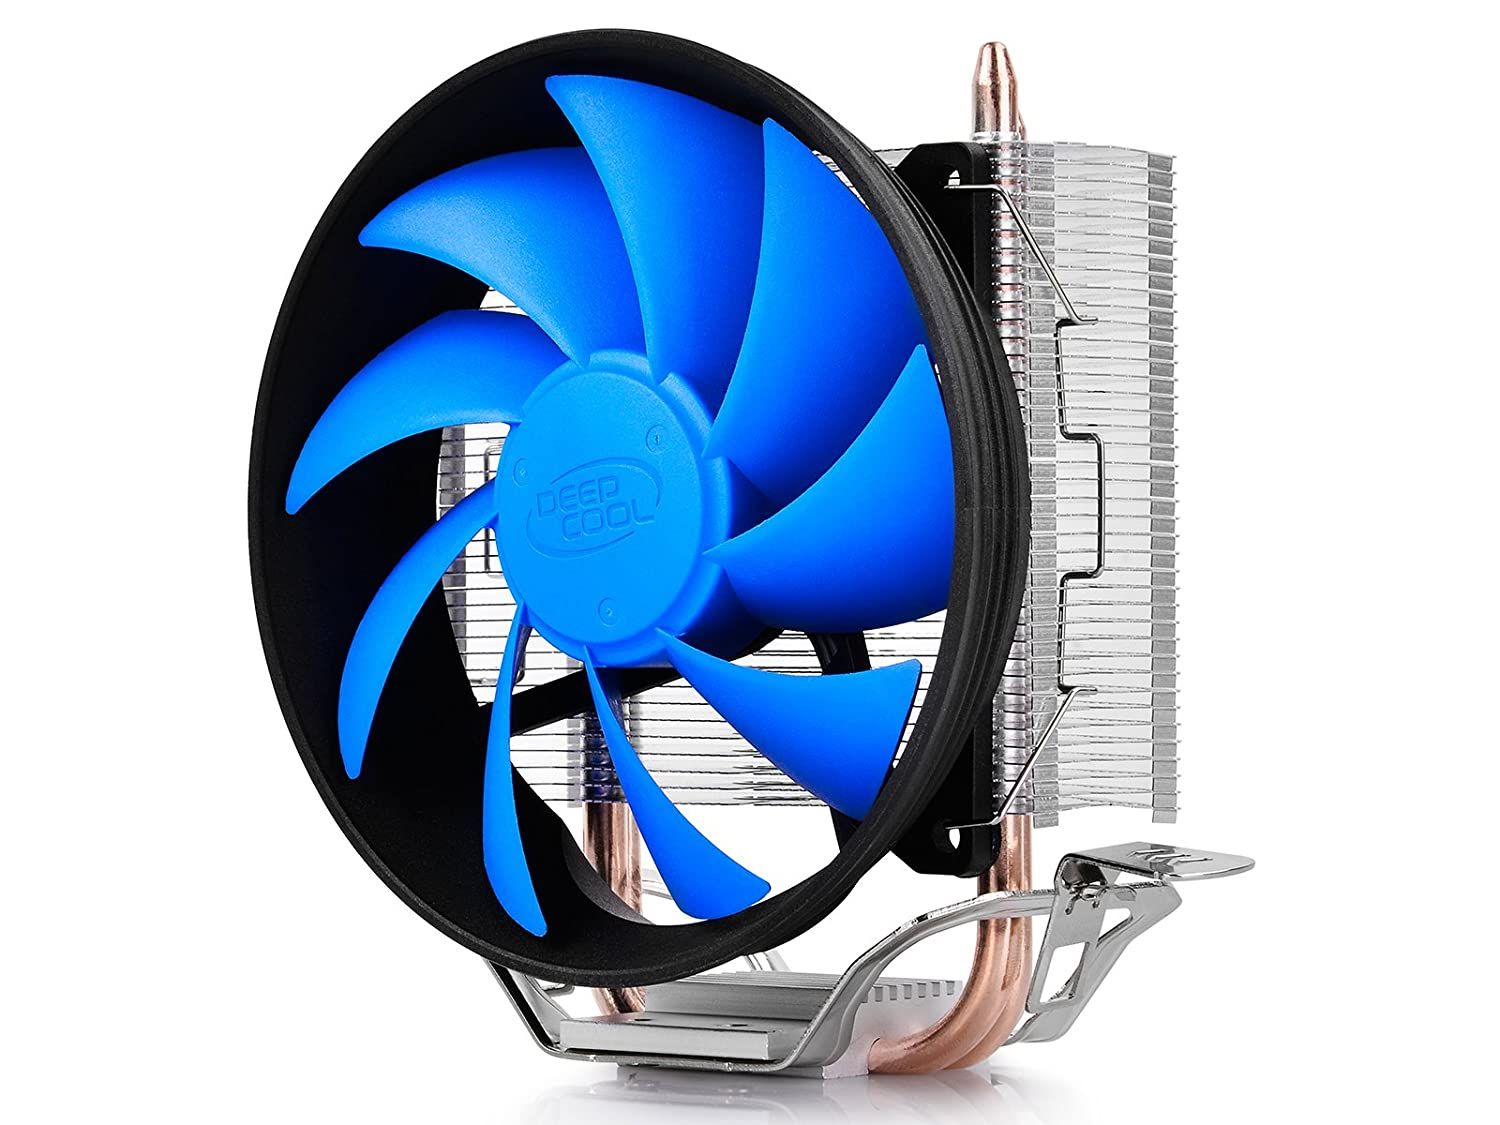 Deepcool GAMMAXX 200 CPU Cooler | Intel LGA1150/1155/1156/775 | AMD FM2/FM1/AM3+/AM3/AM2+/AM2/K8